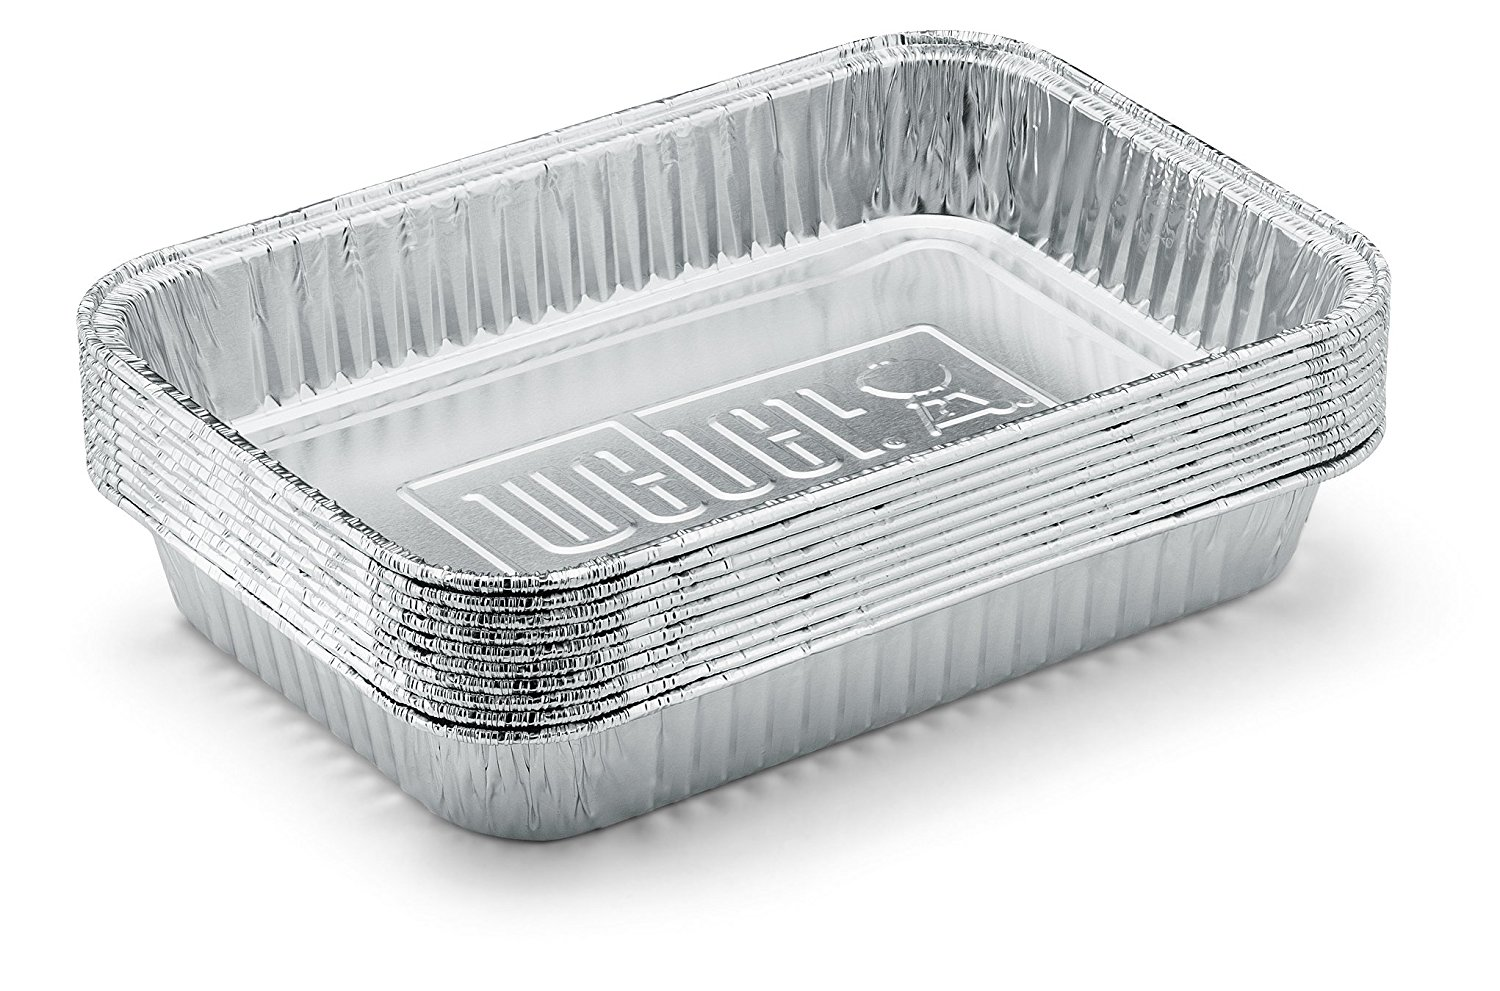 Small Drip Pan (Pack of 10) $13.95